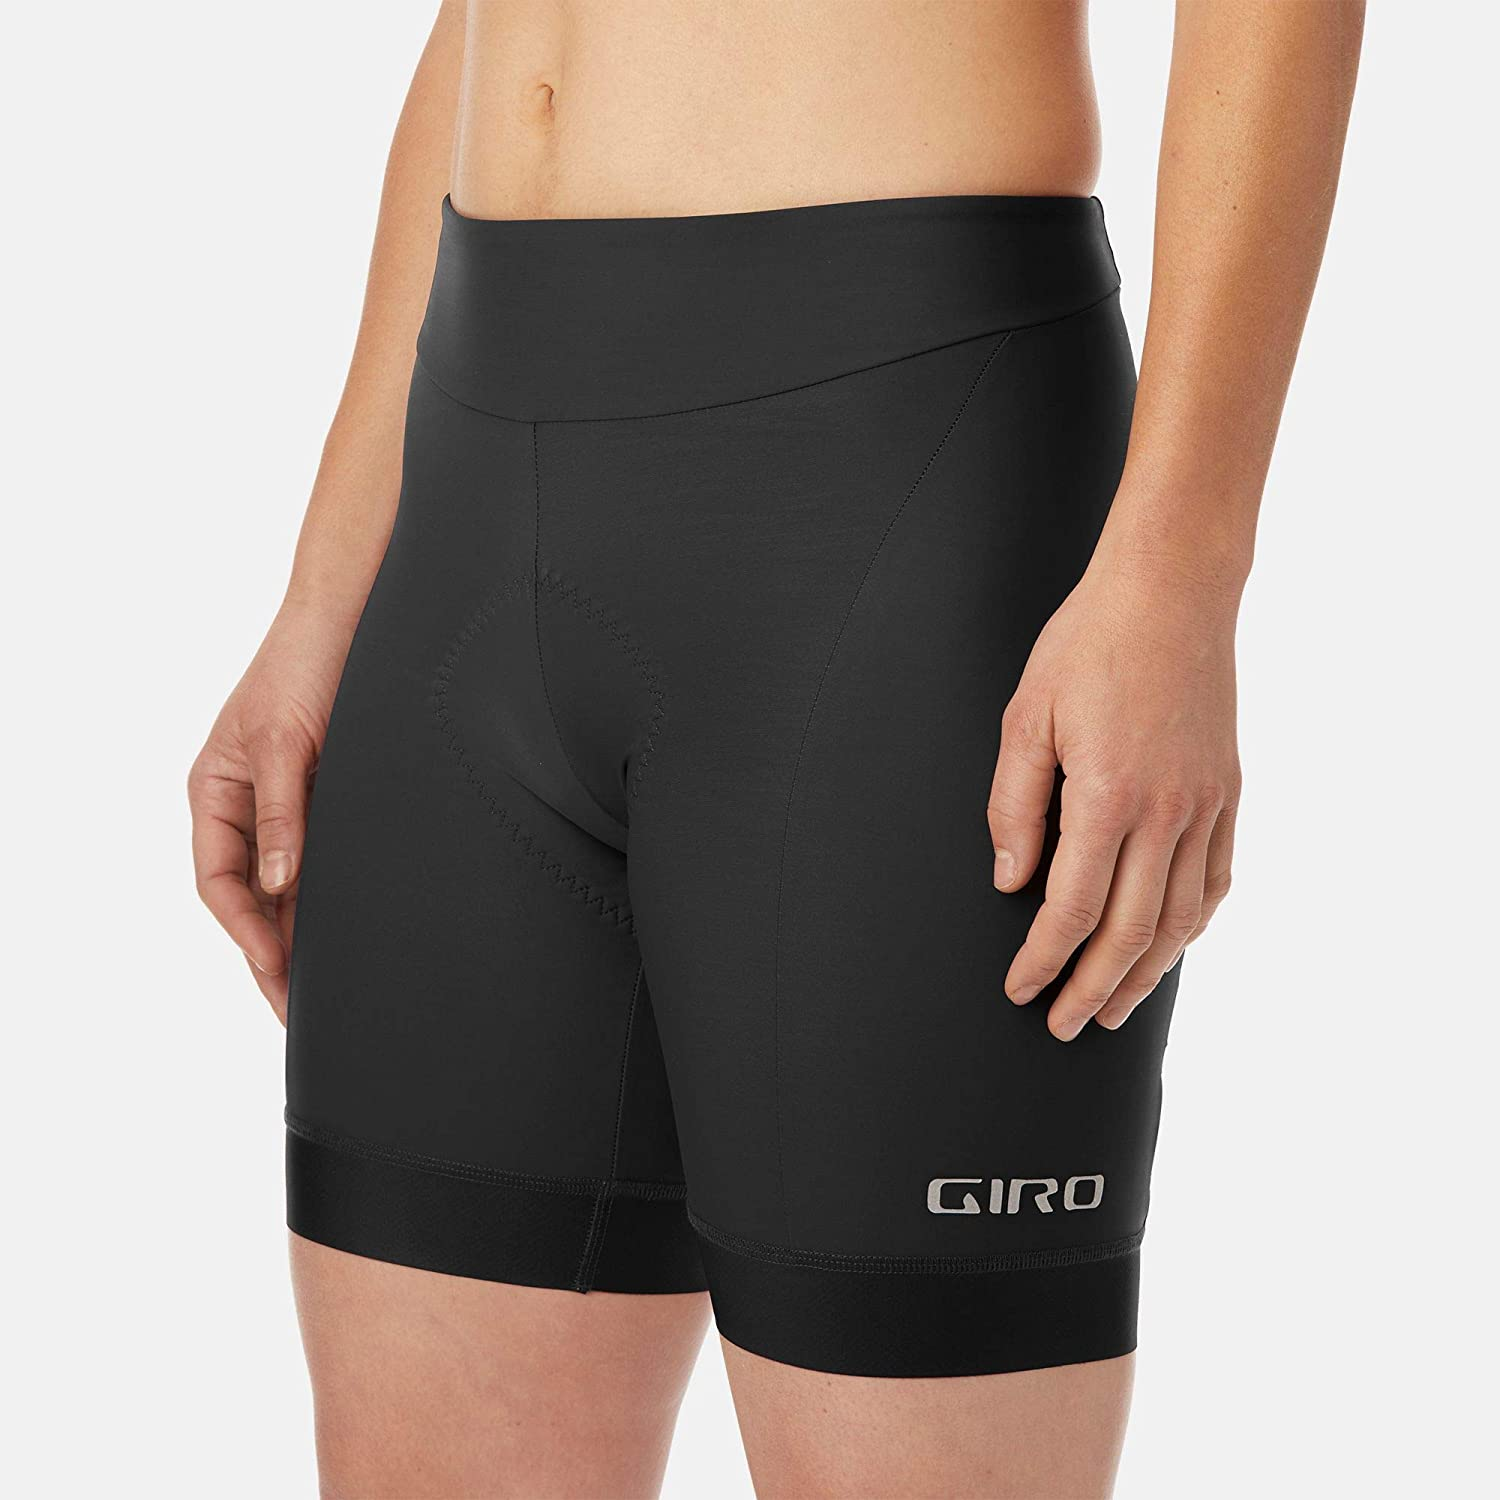 Giro W Award Chrono Sport Short Shorts Womens Outlet sale feature Adult Cycling